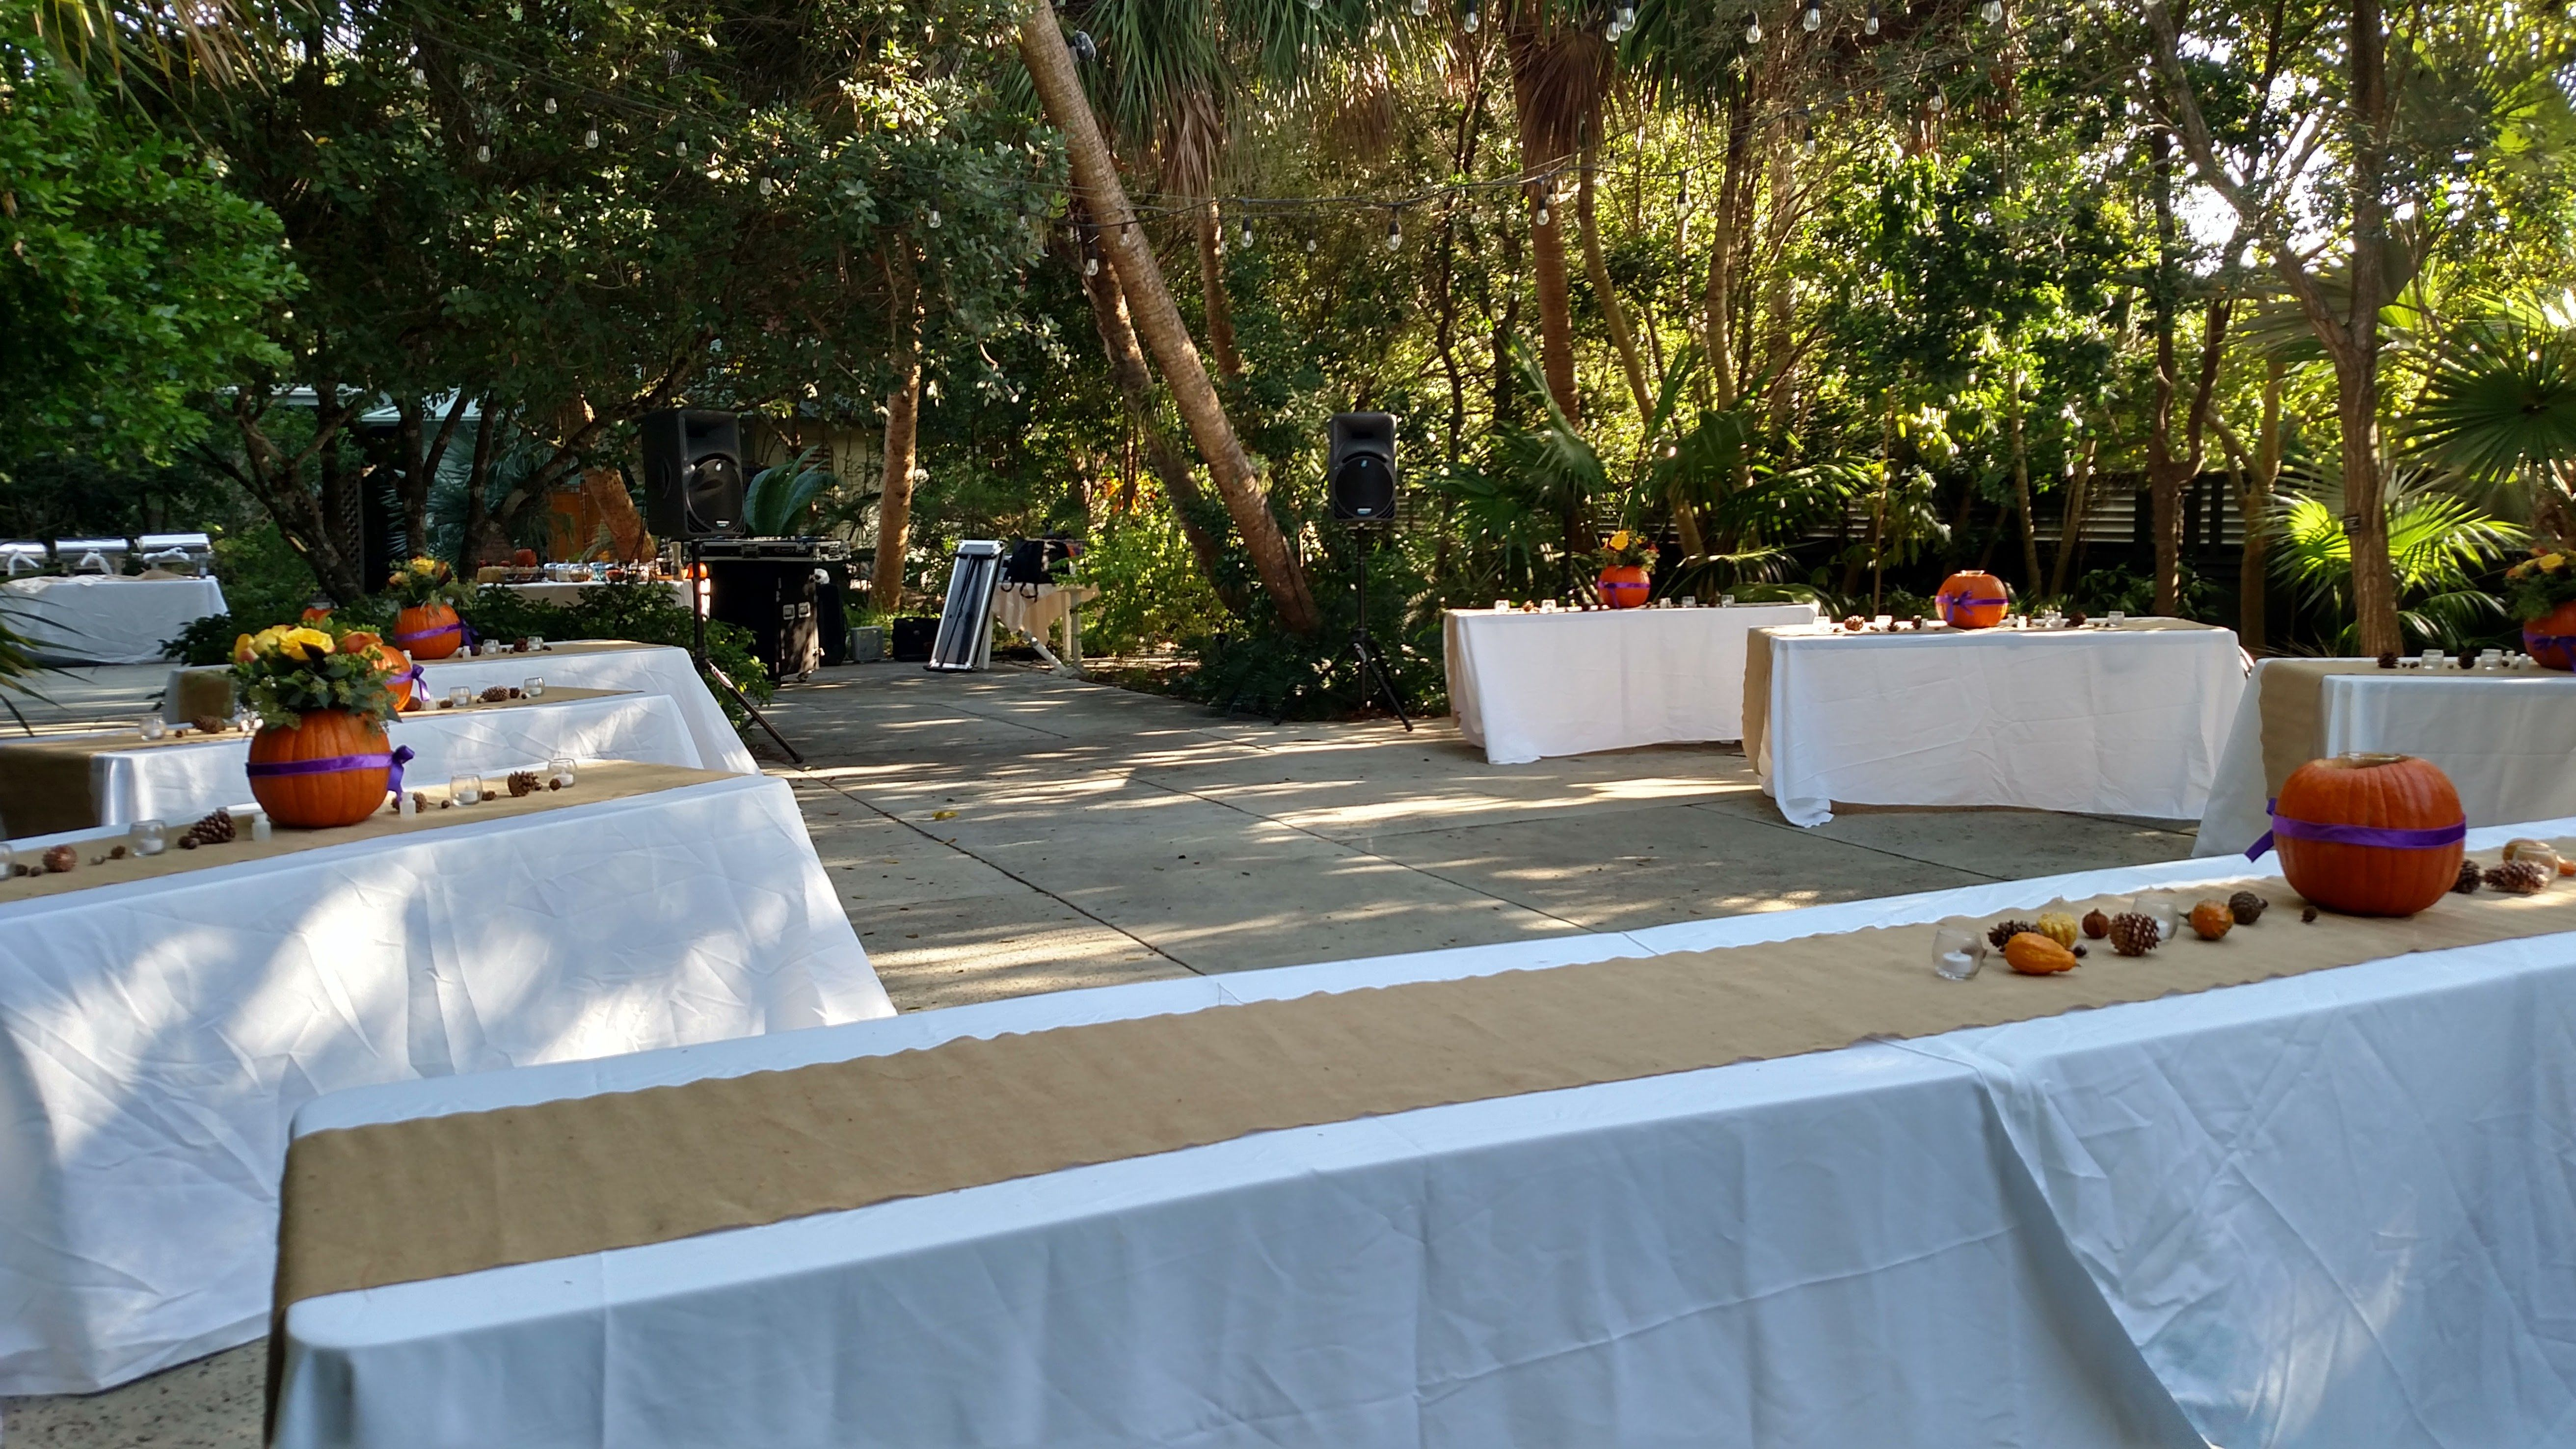 Courtyard Layout With Fall Themed Wedding At The Key West Tropical Forest Botanical Garden Tropicalgardenwedding